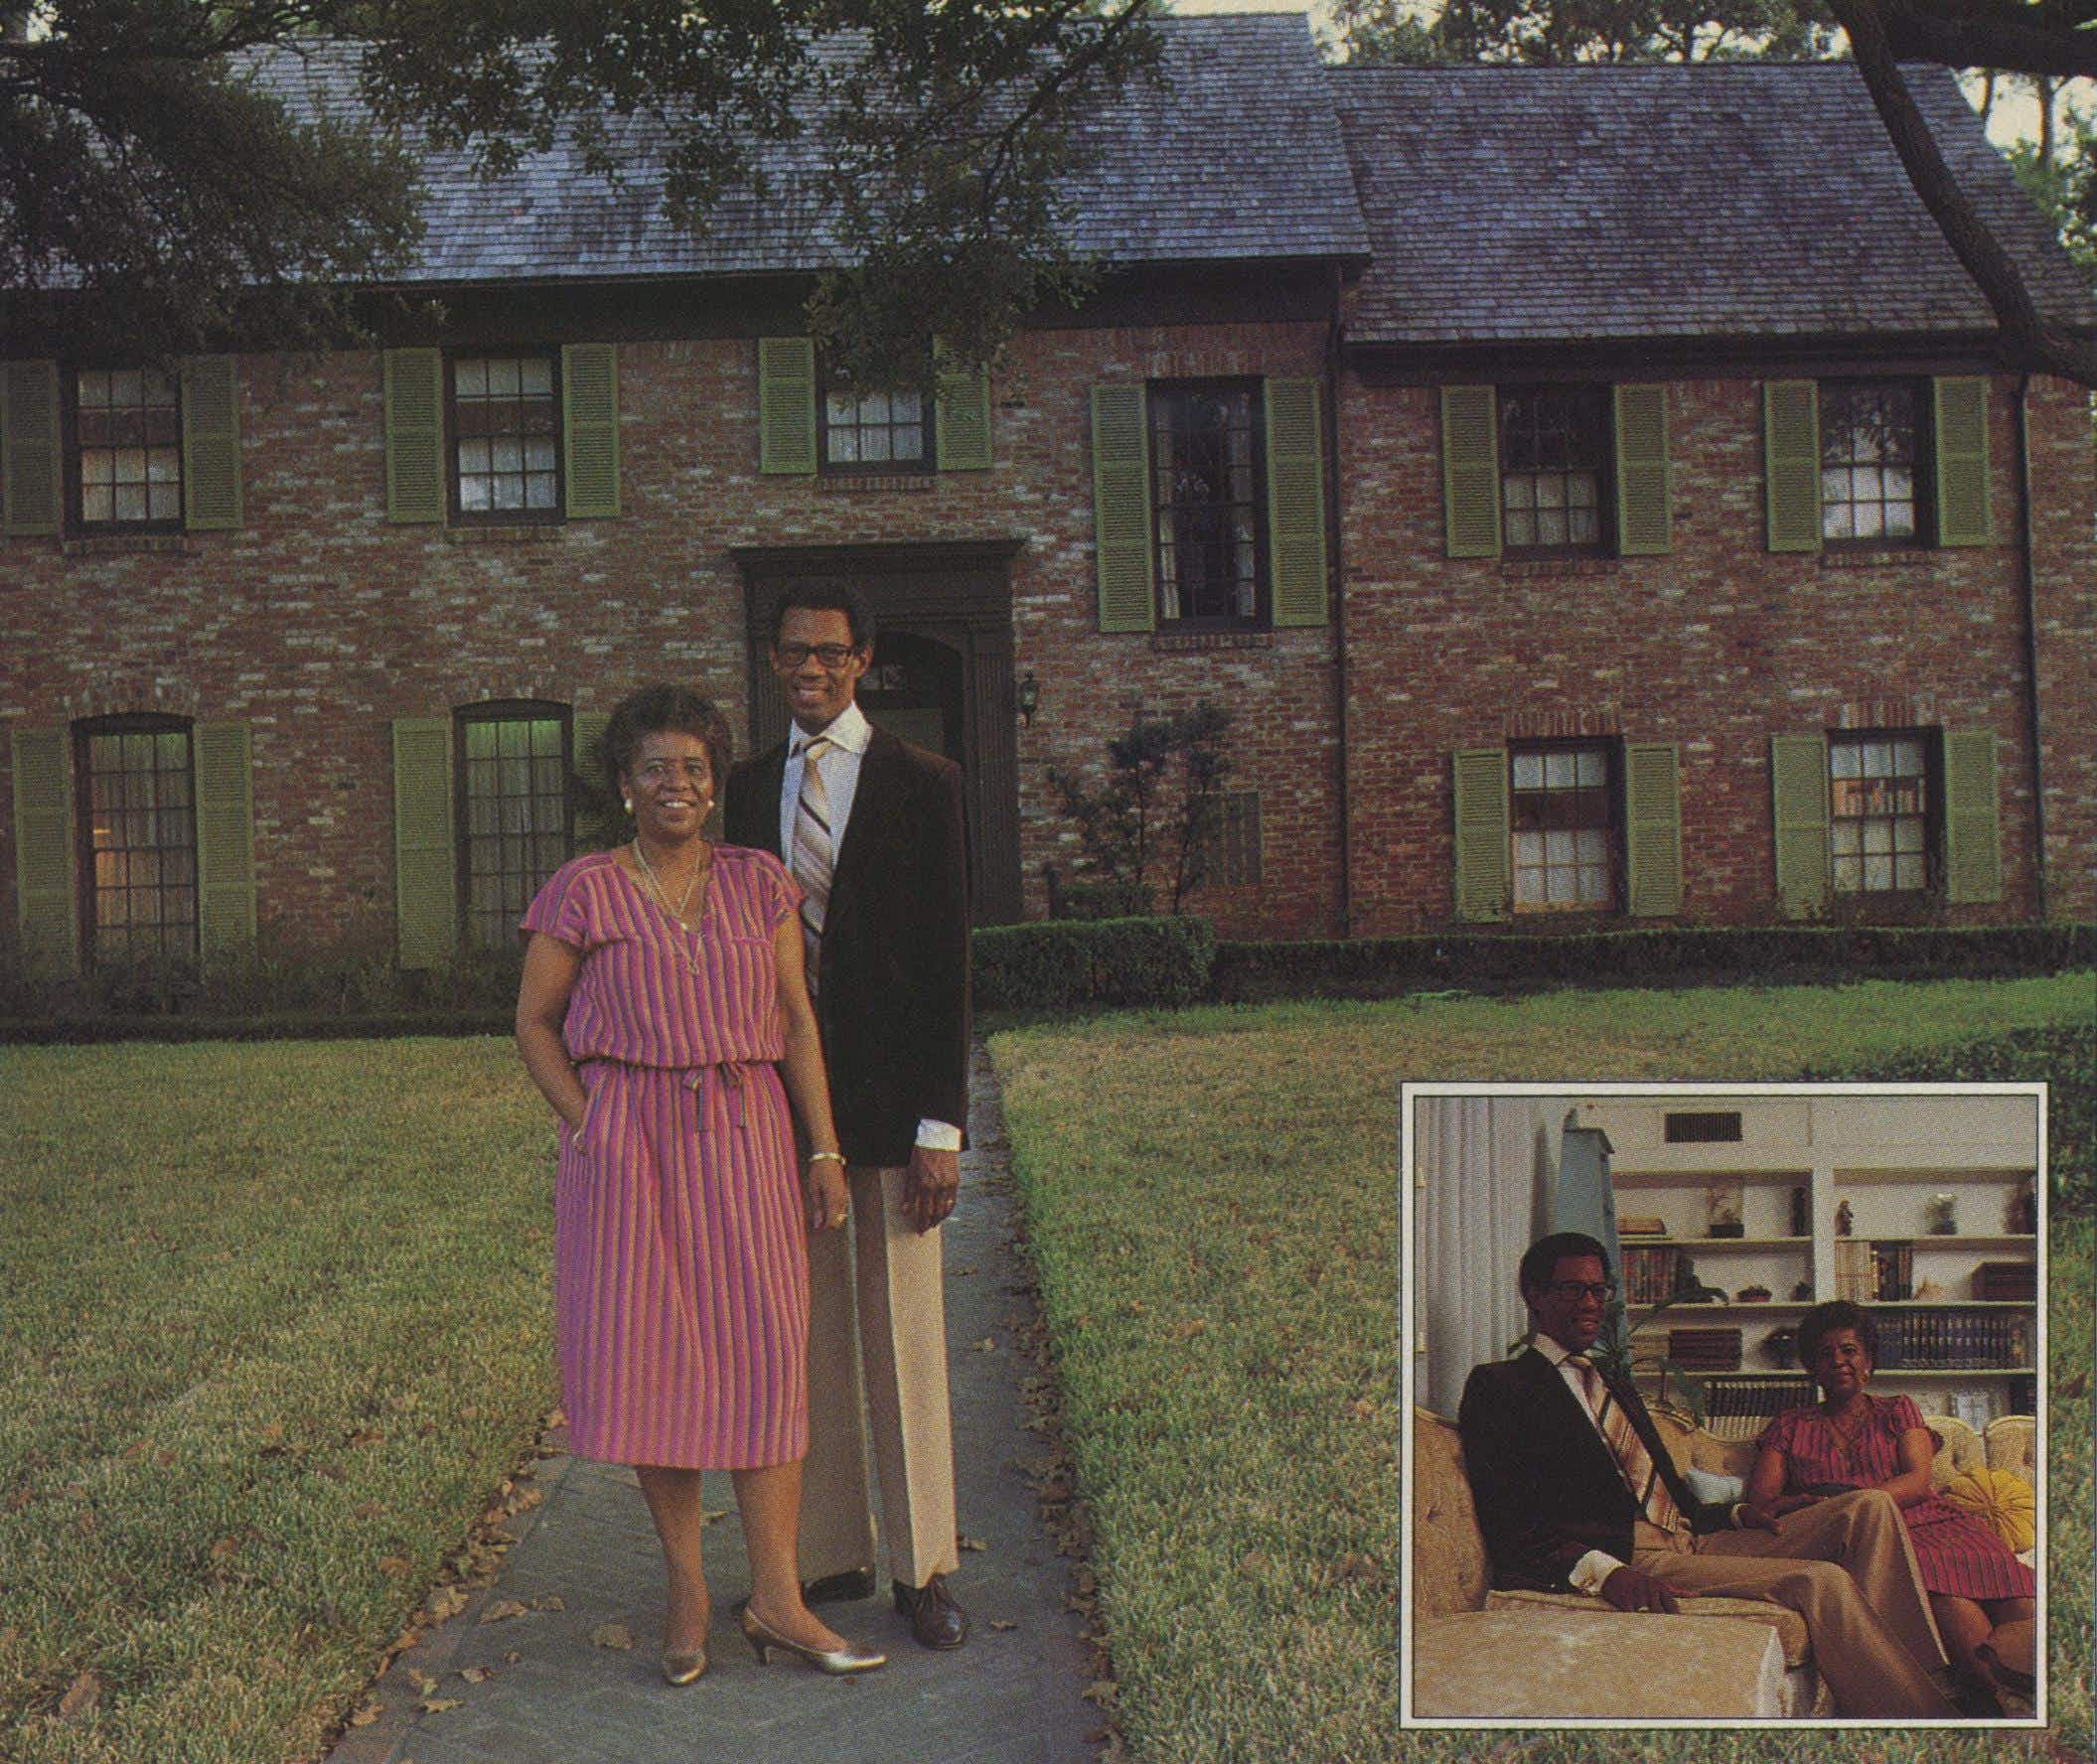 The Reverend William Lawson, pastor of the Wheeler Avenue Baptist Church, and his wife, Audrey, live here on South MacGregor.